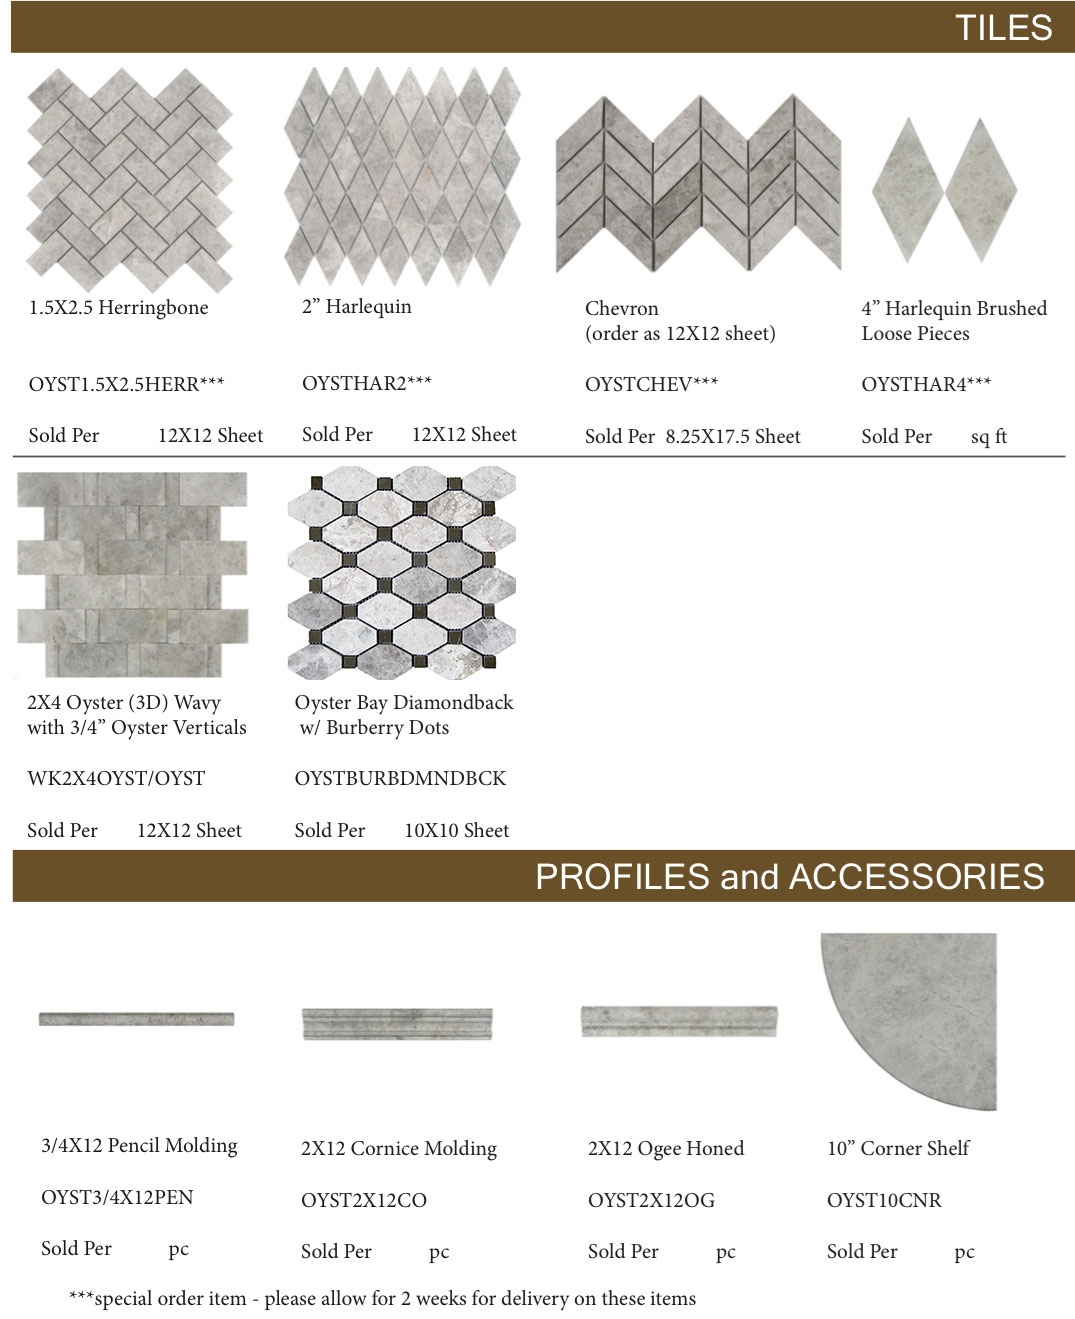 Oyster-Bay-Marble-Tiles-Profiles-and-Accessories